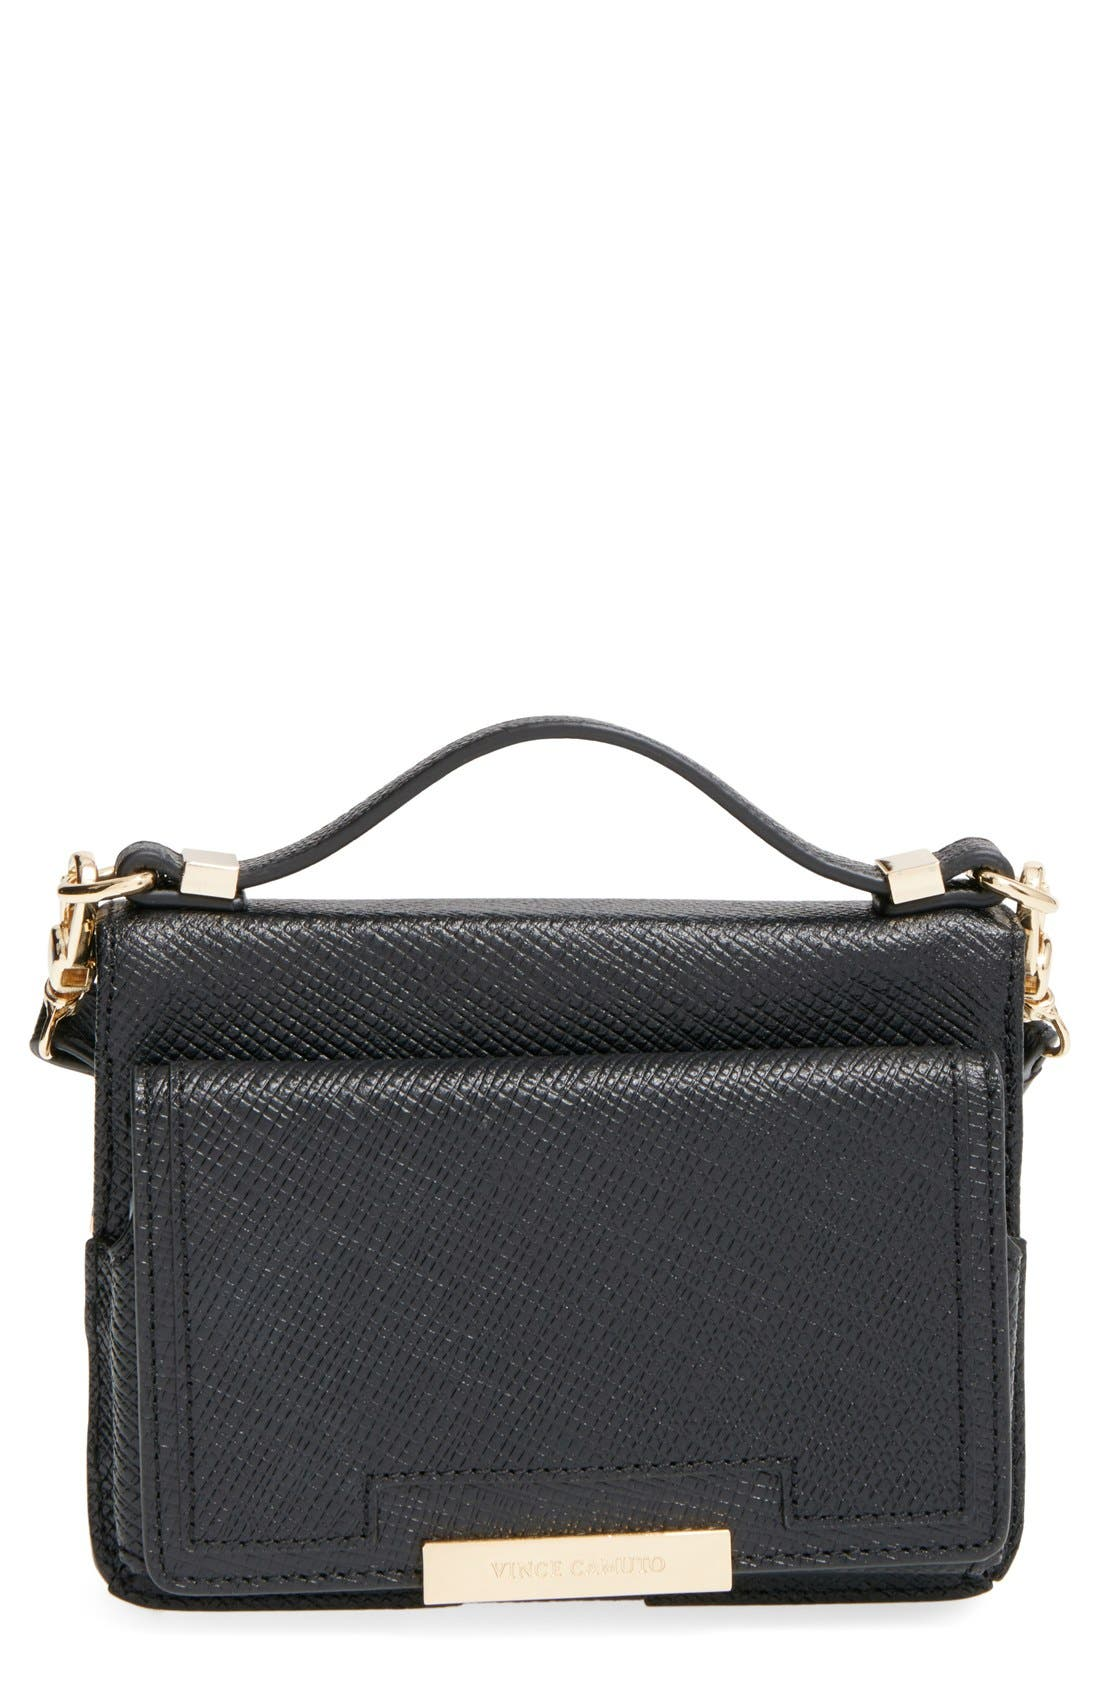 Main Image - Vince Camuto 'Small Mila' Crossbody Bag